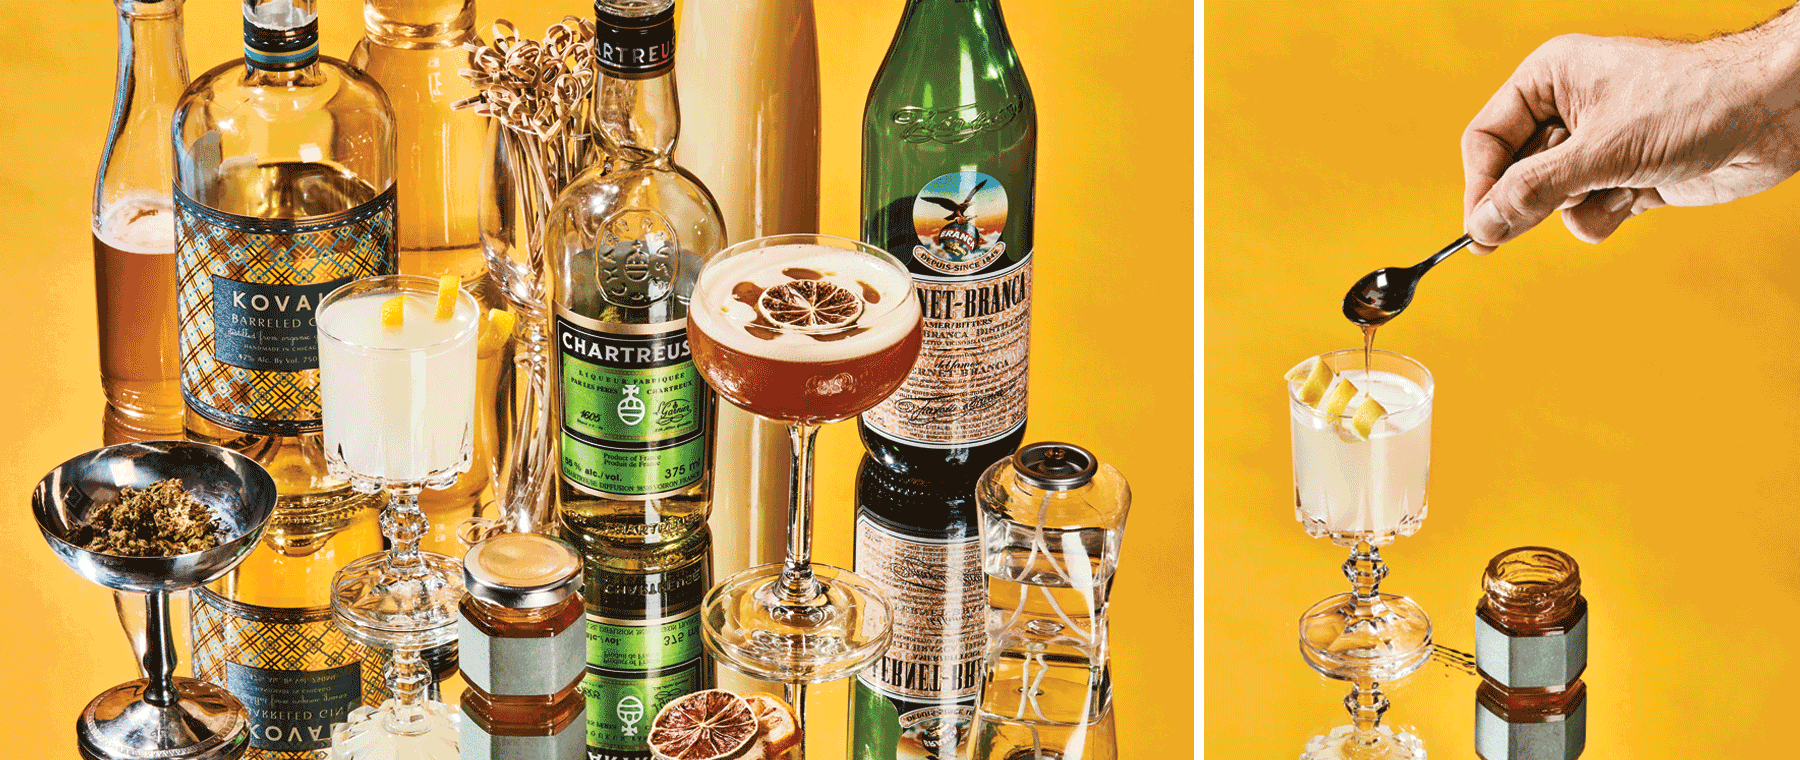 A DIY guide to cannabis cocktails with bartender Shane Gifford